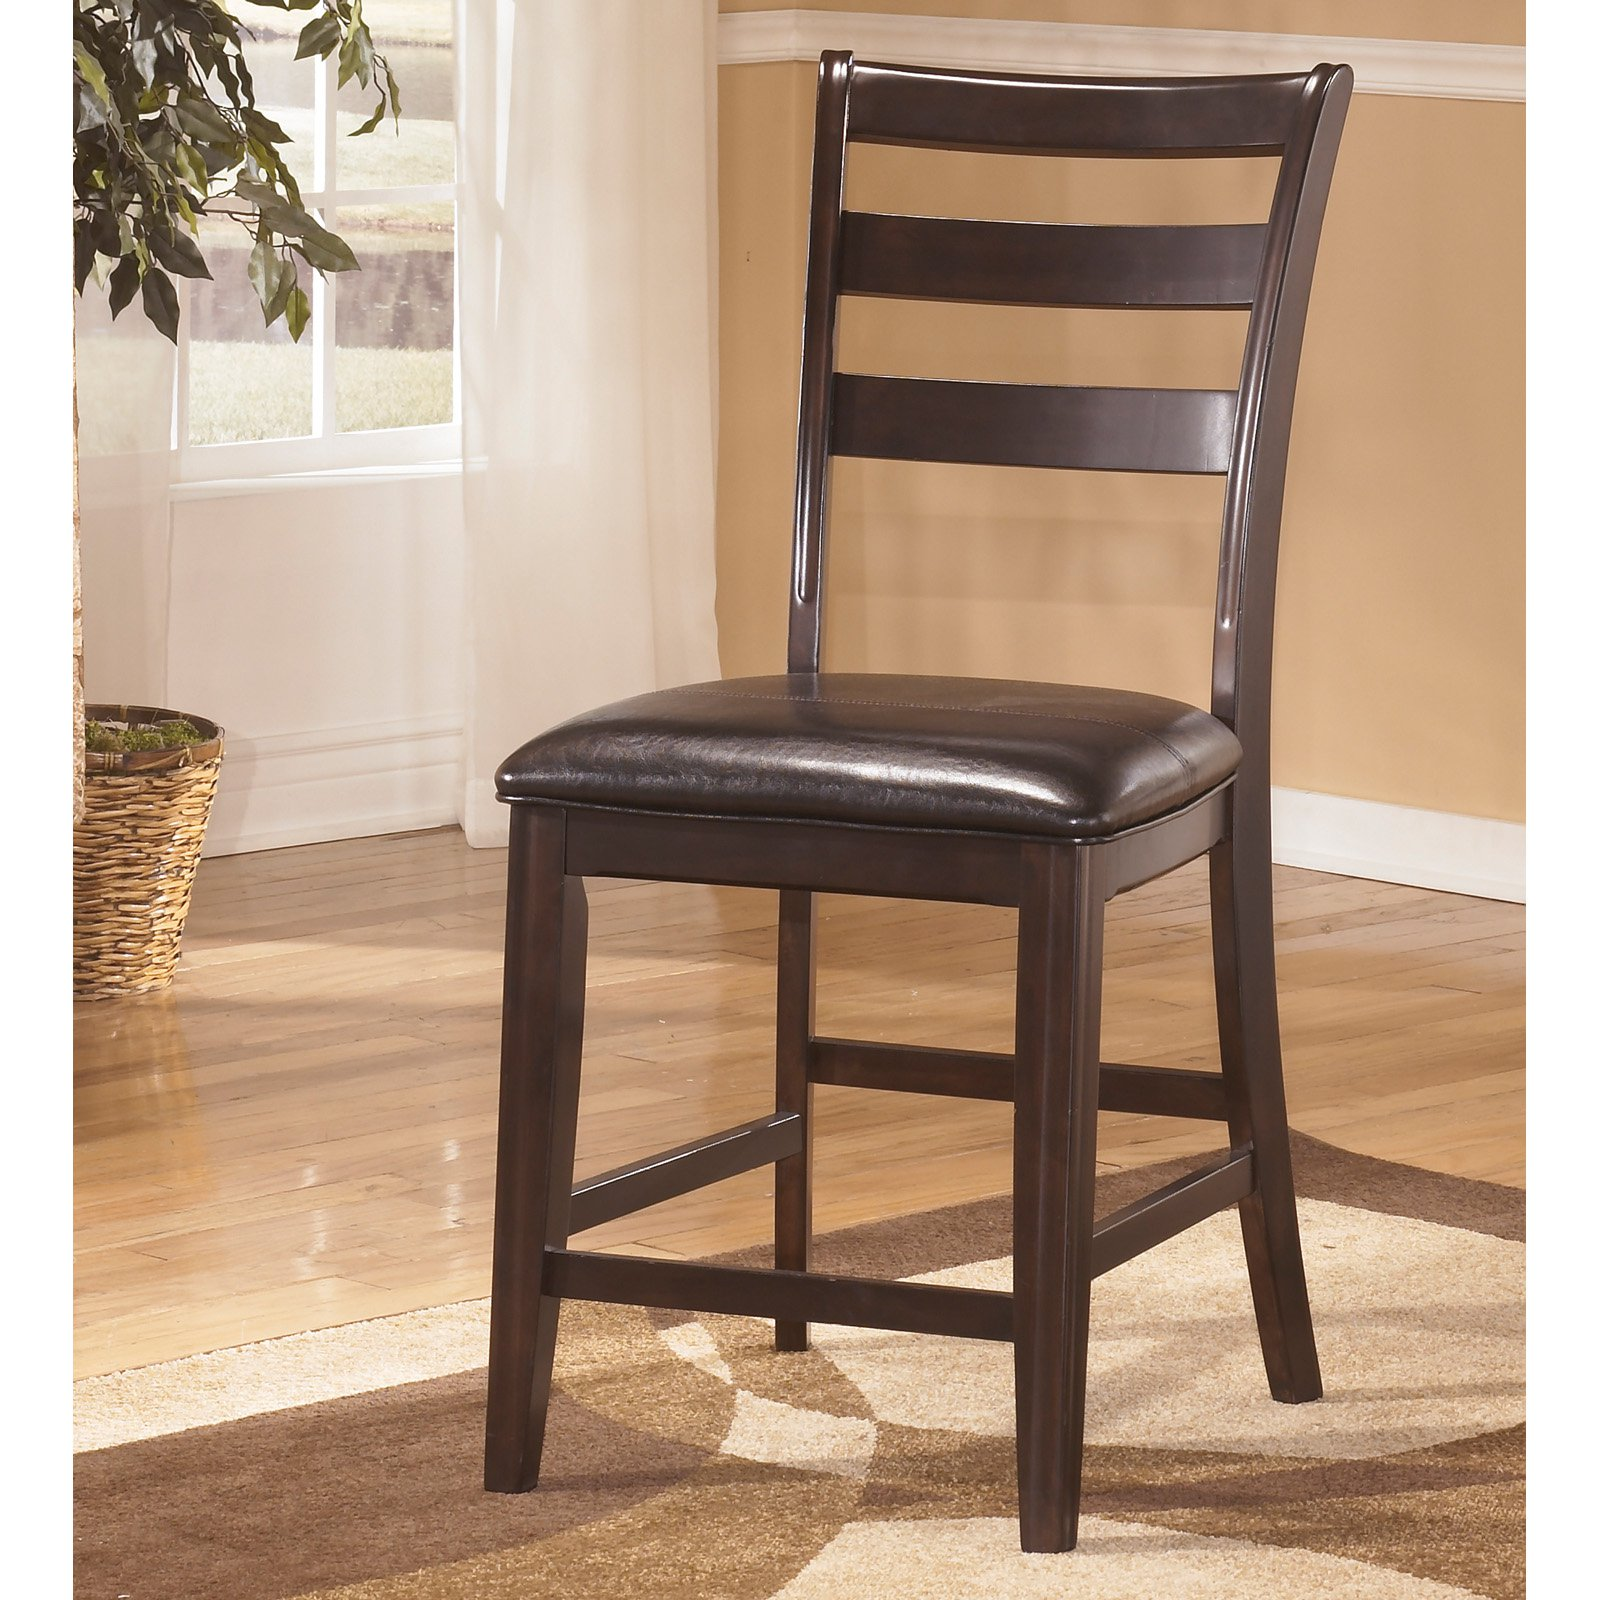 Signature Design by Ashley Ridgley Counter Height Chairs - Set of 2